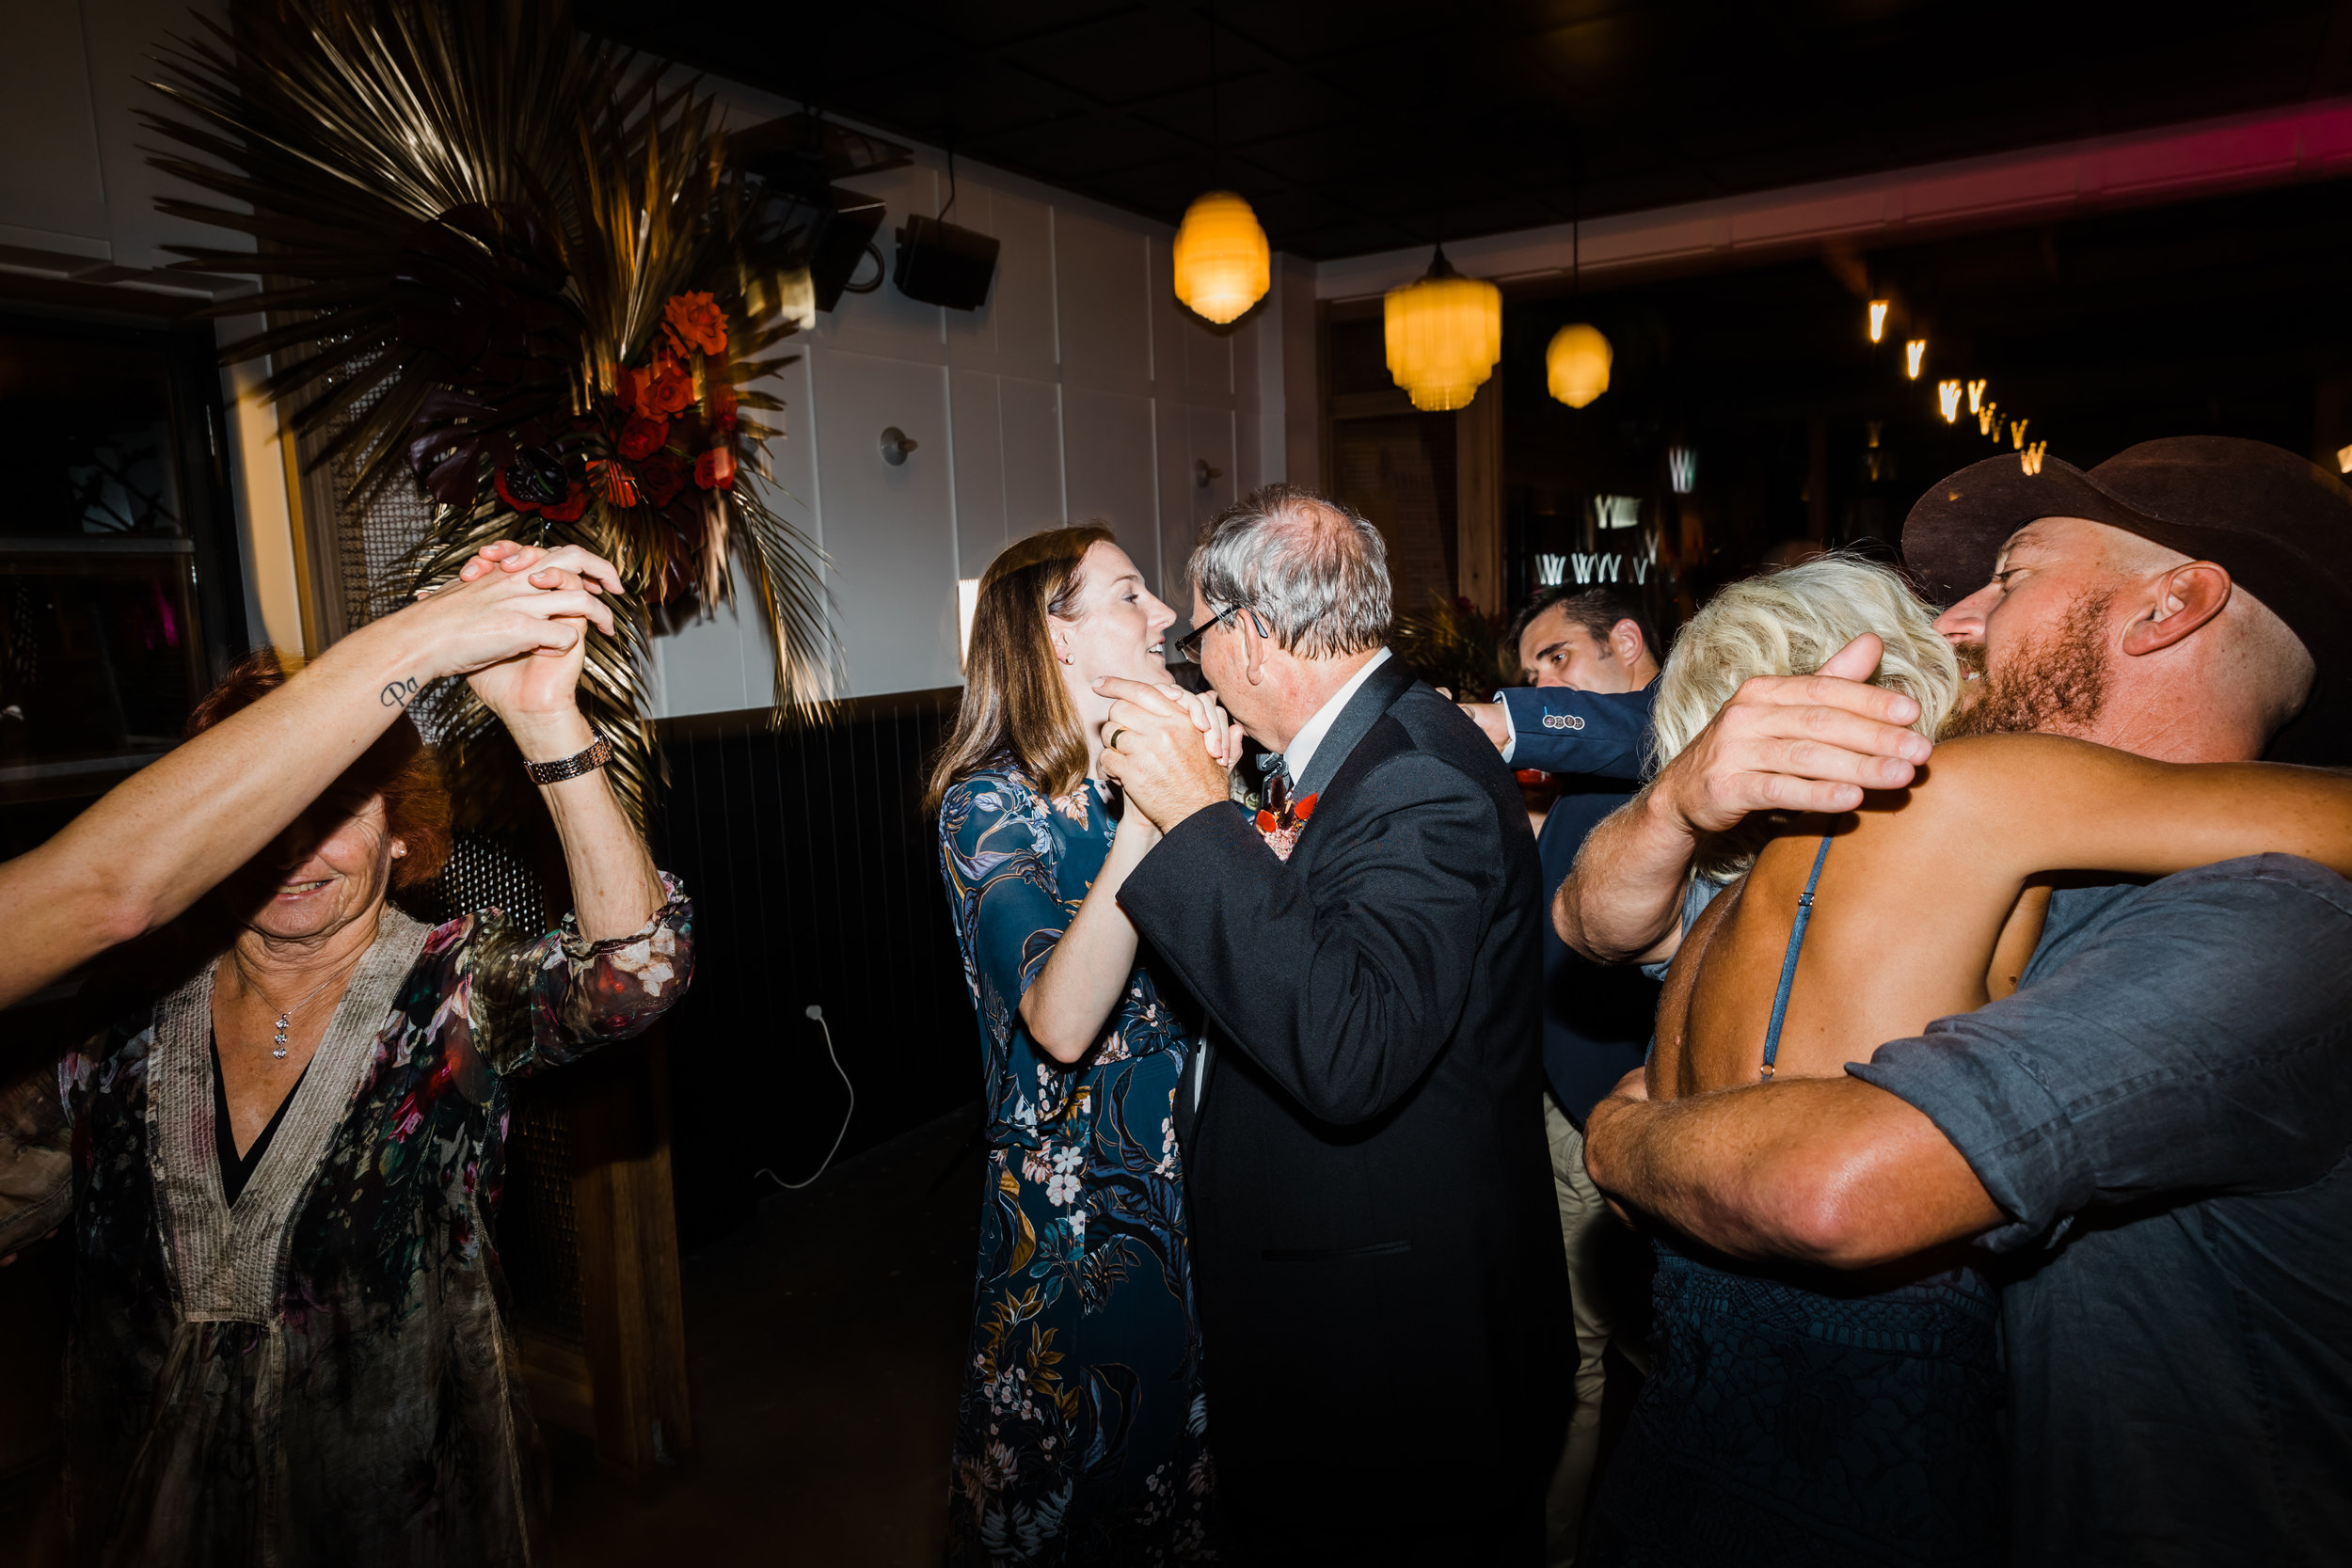 newcastle-wedding-nerida-michael-107.jpg